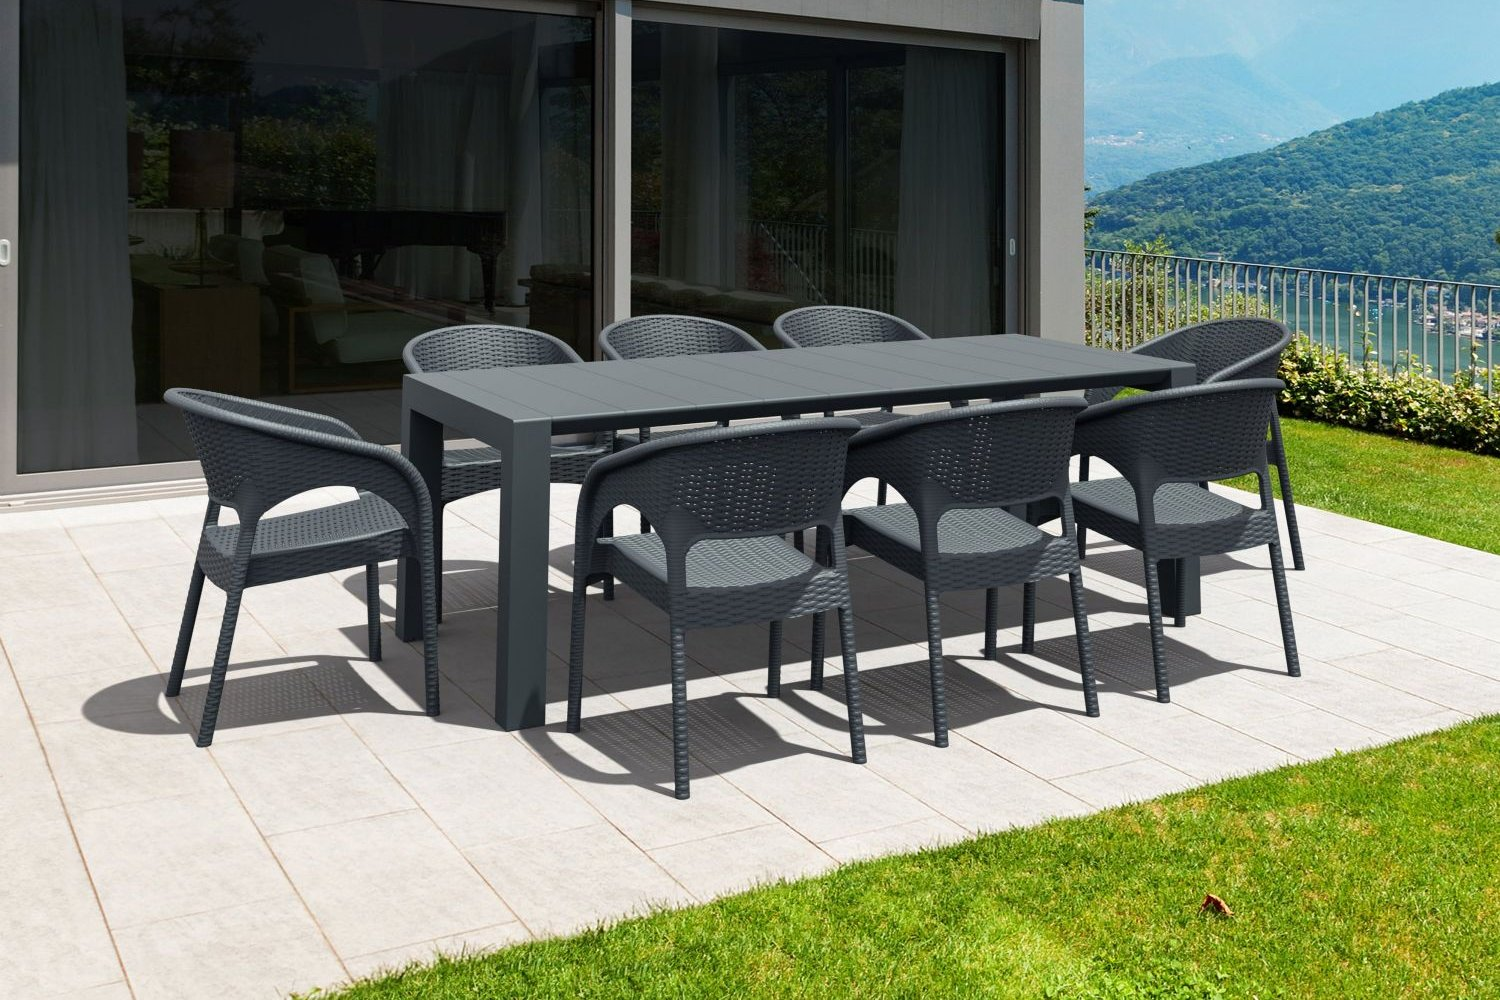 Panama Extendable Patio Dining Set 9 piece Brown ISP8083S-BR - 2